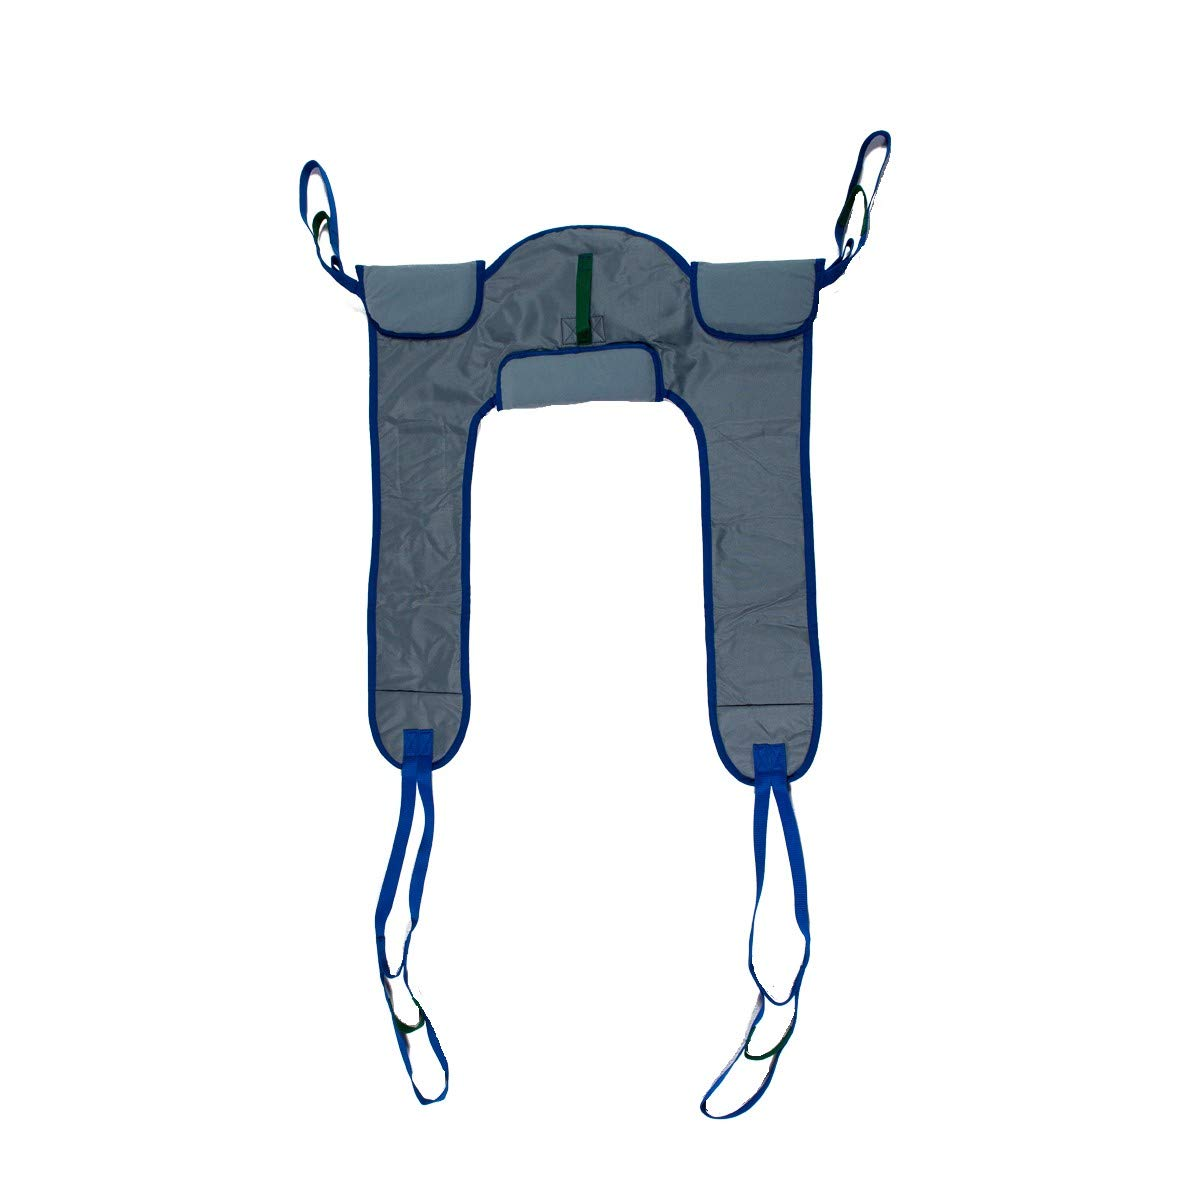 Deluxe Padded Toileting Patient Lift Sling, with Belt, Size (Small), 450lb Weight Capacity by Patient Aid